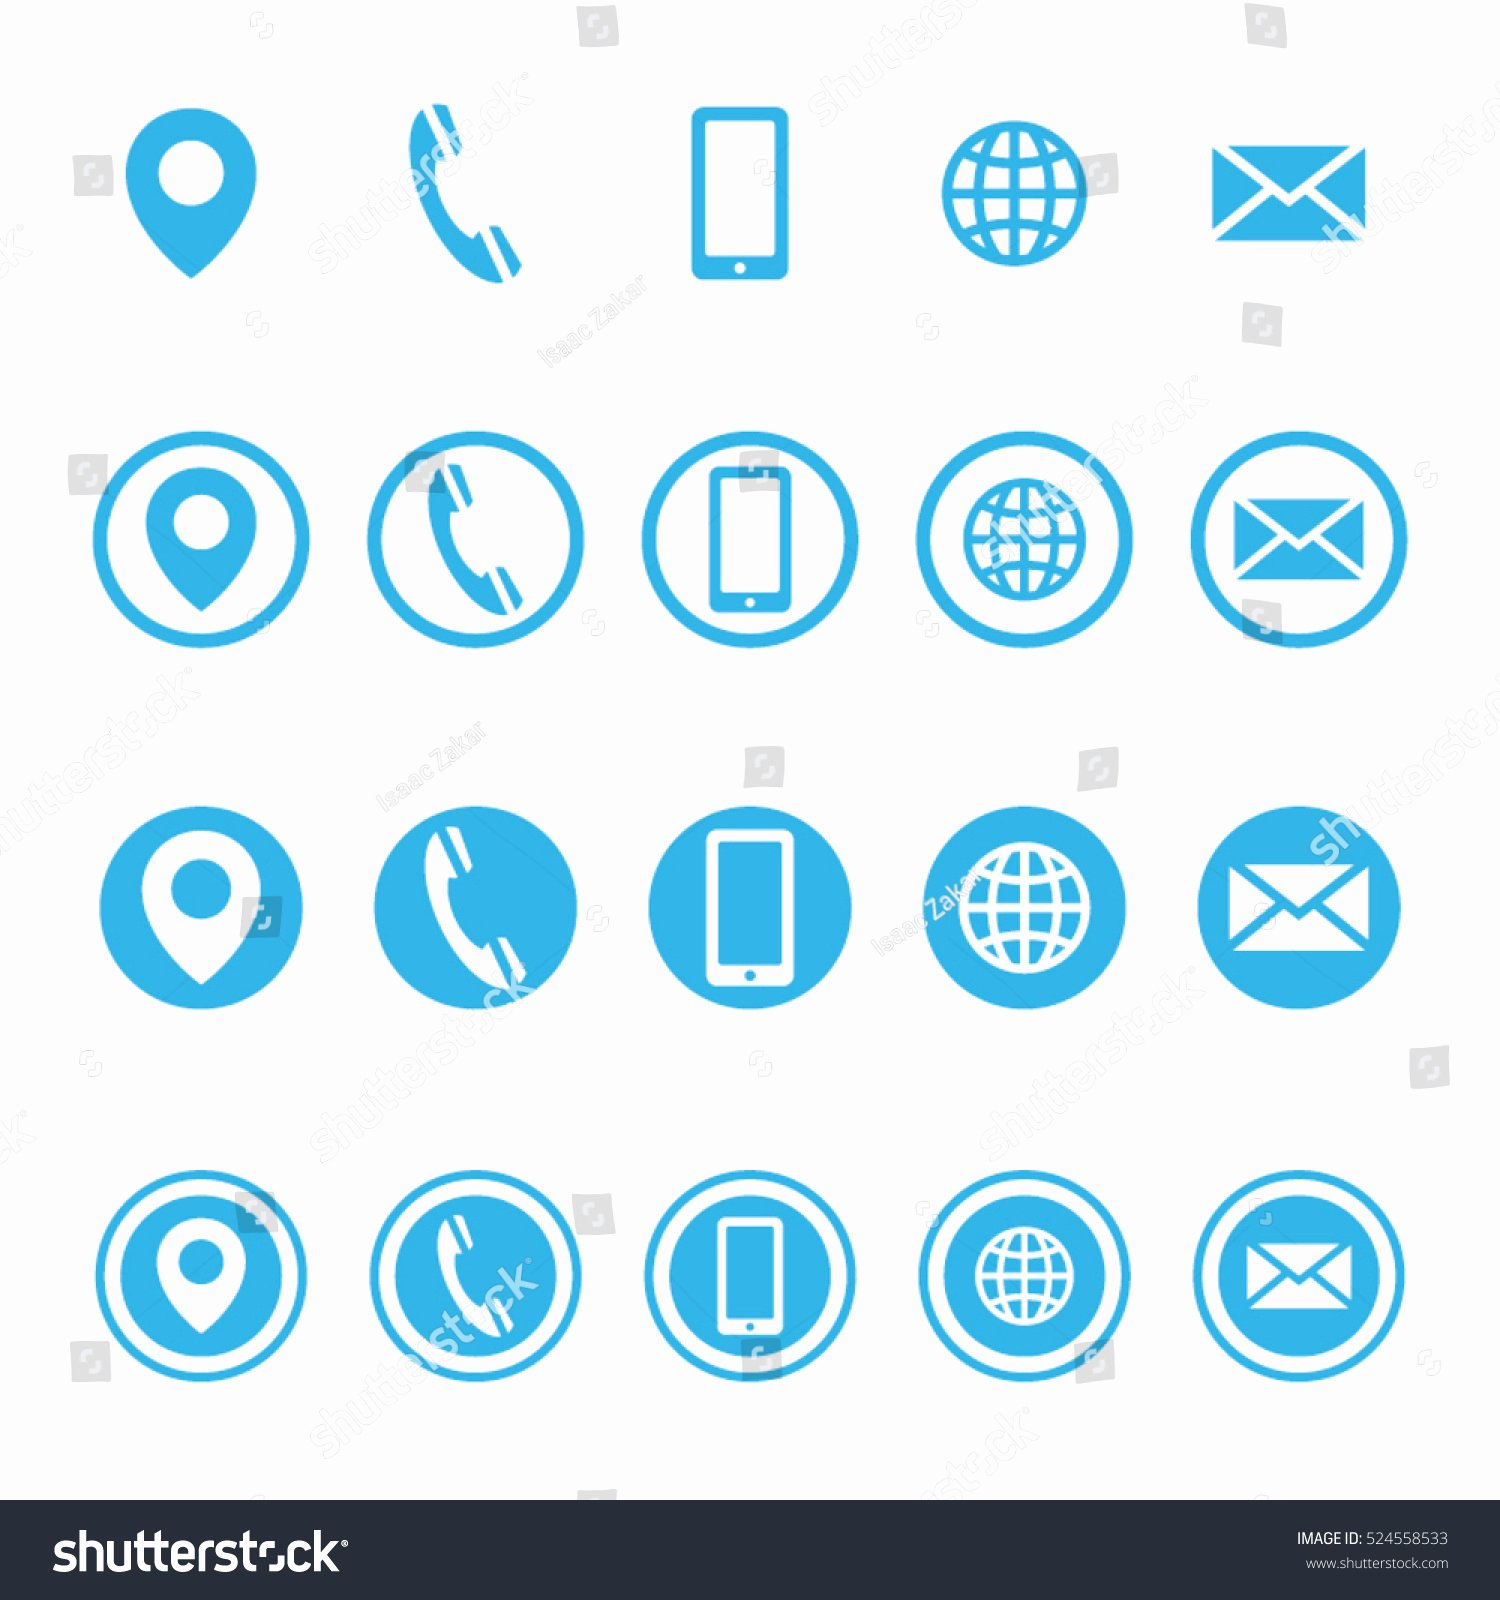 Icon for Business Card Beautiful Vector Business Card Contact Information Icons Stock